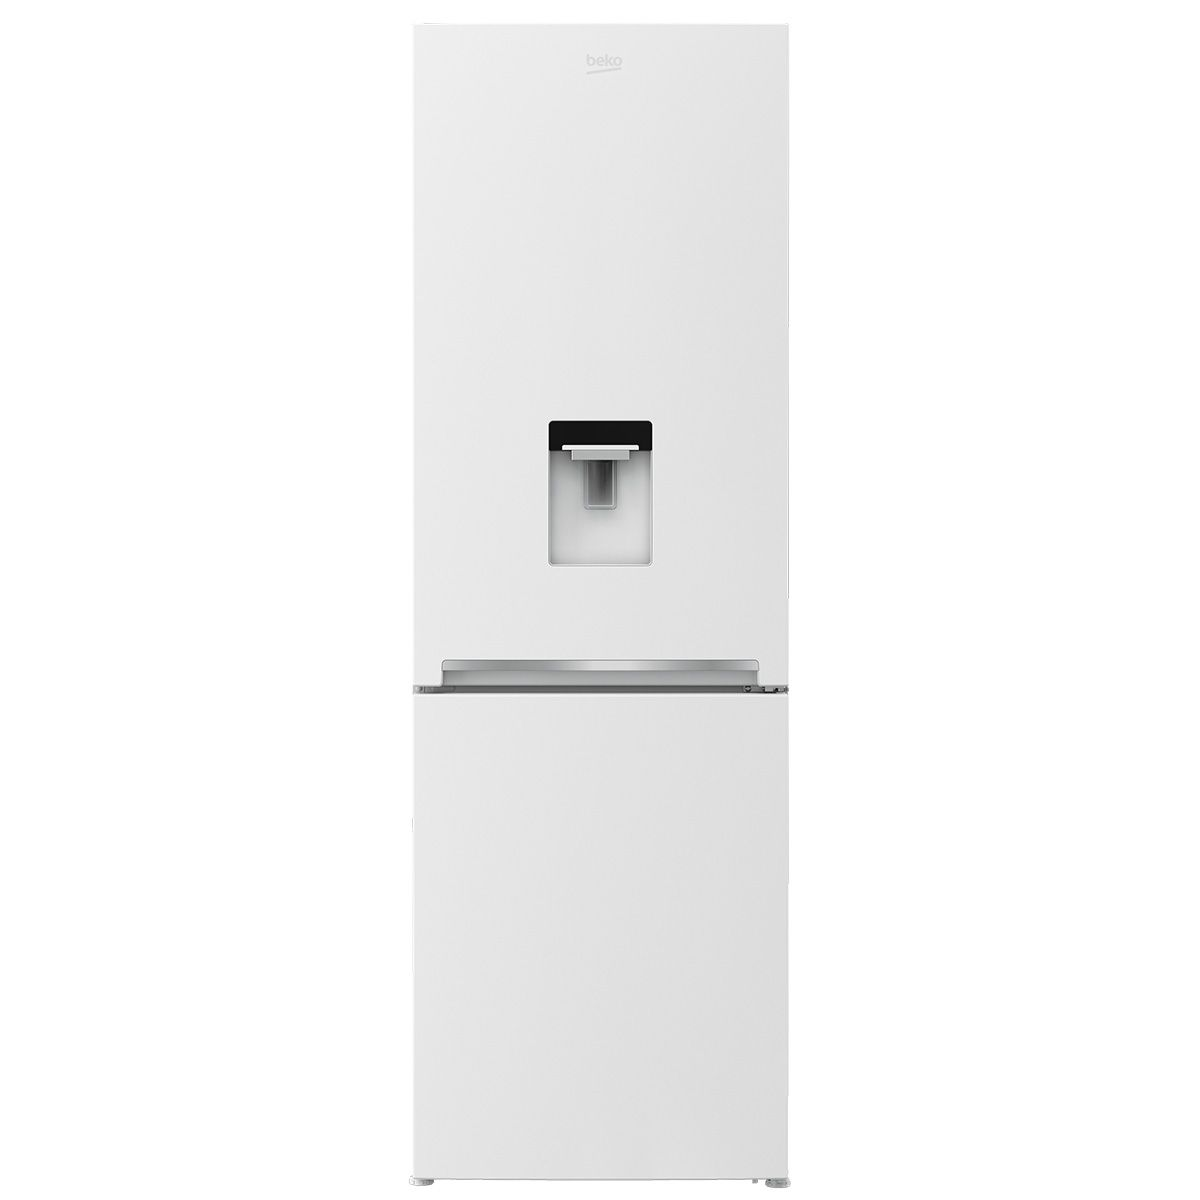 Beko Select CXFG1685DW Fridge Freezer review